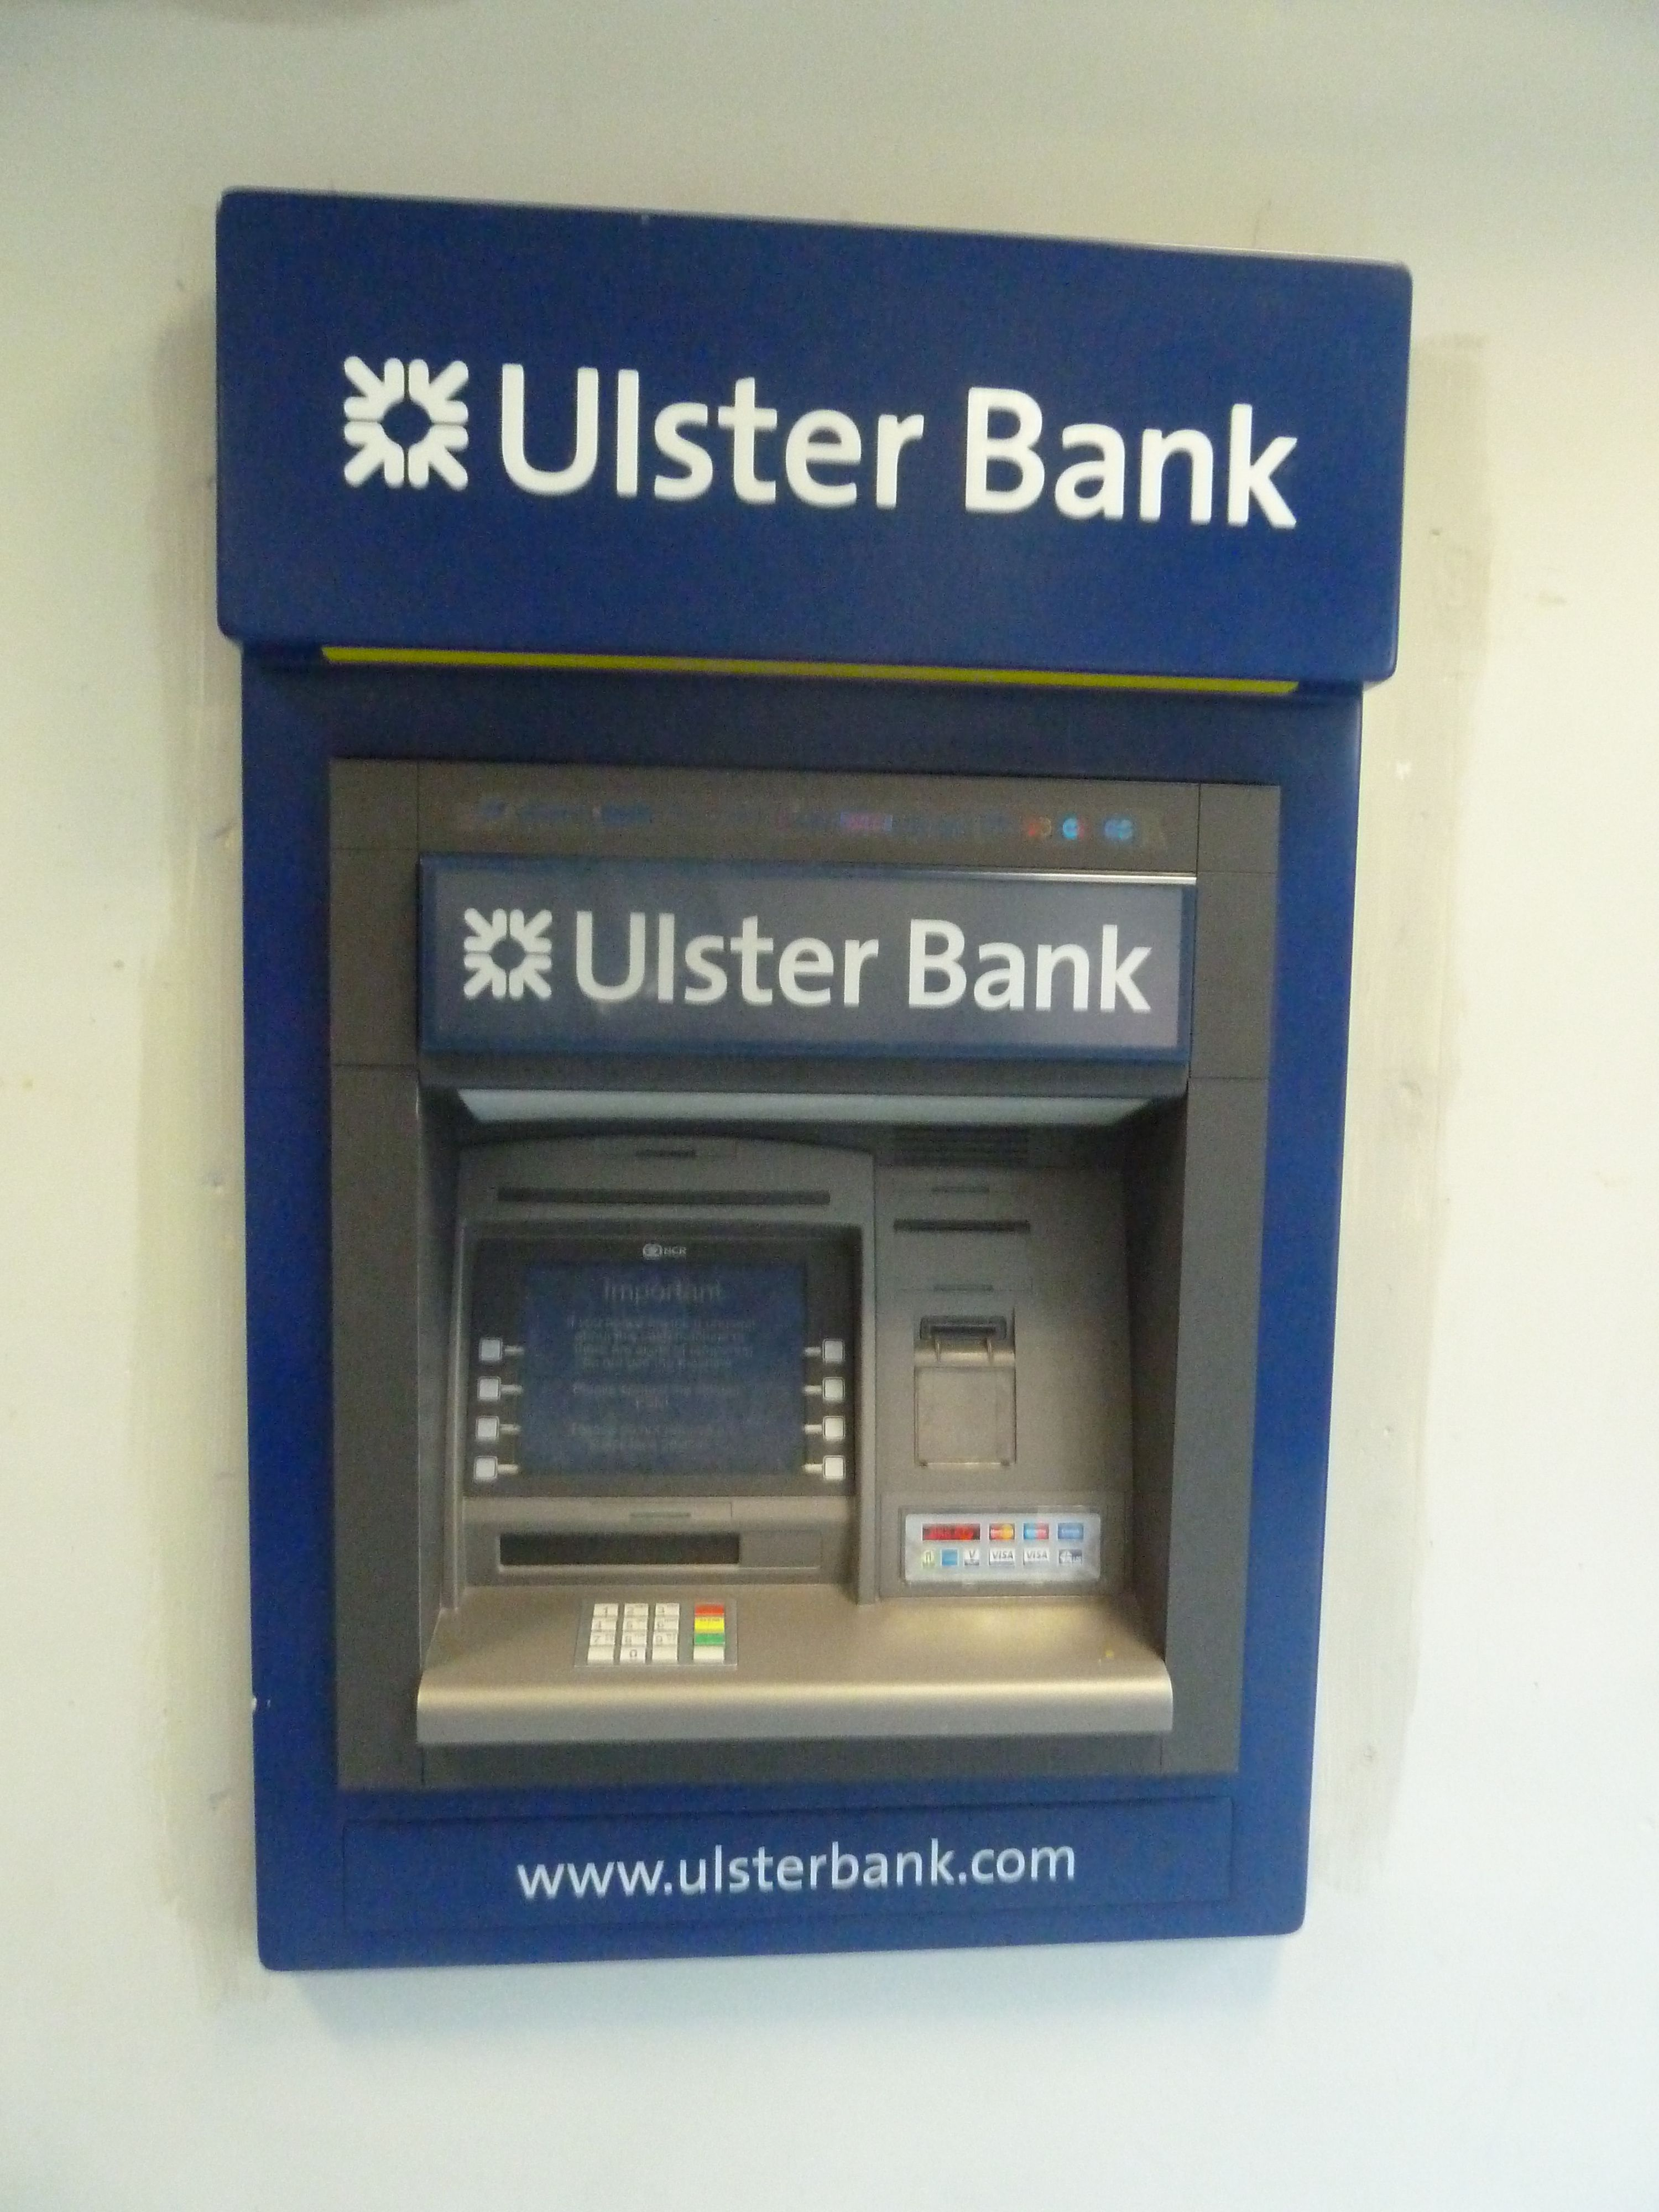 Ulster Bank ATM | ATM Los Angeles | Pinterest | Interaction design